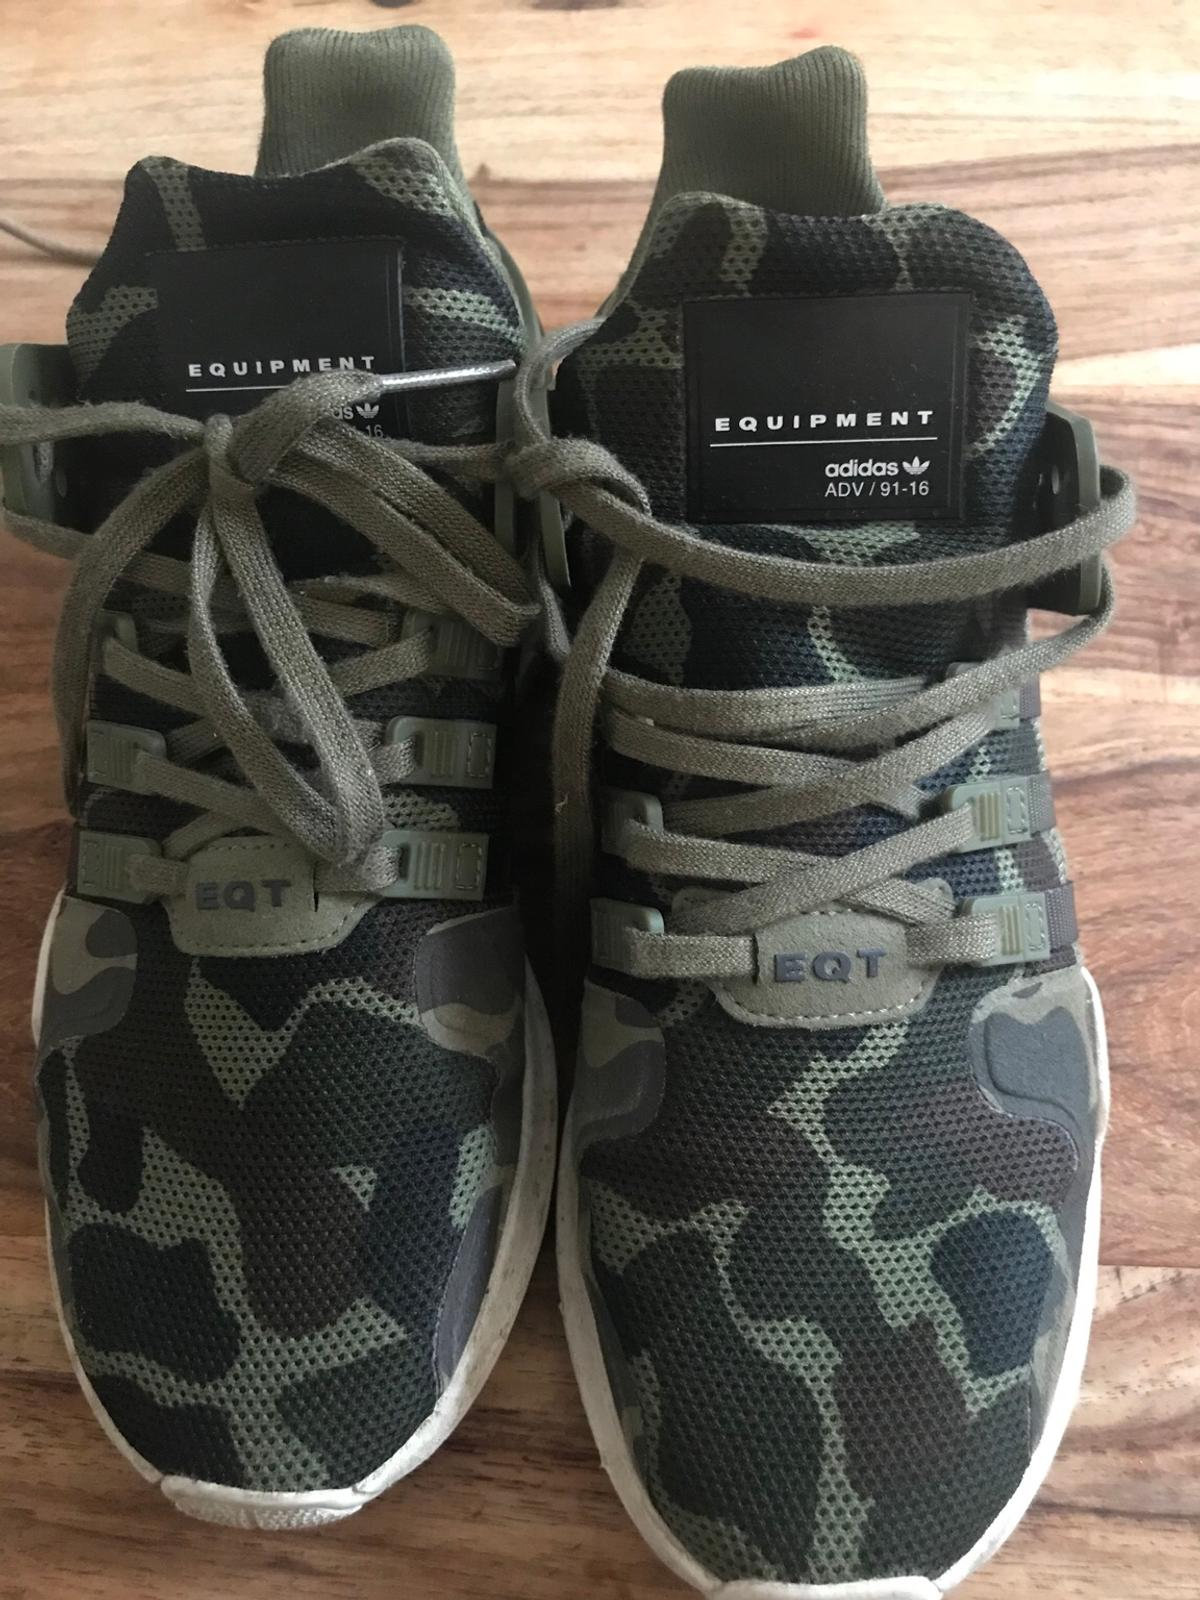 hot sale online 50dad f758d Adidas Equipment Adv/91-16 trainers size 6.5